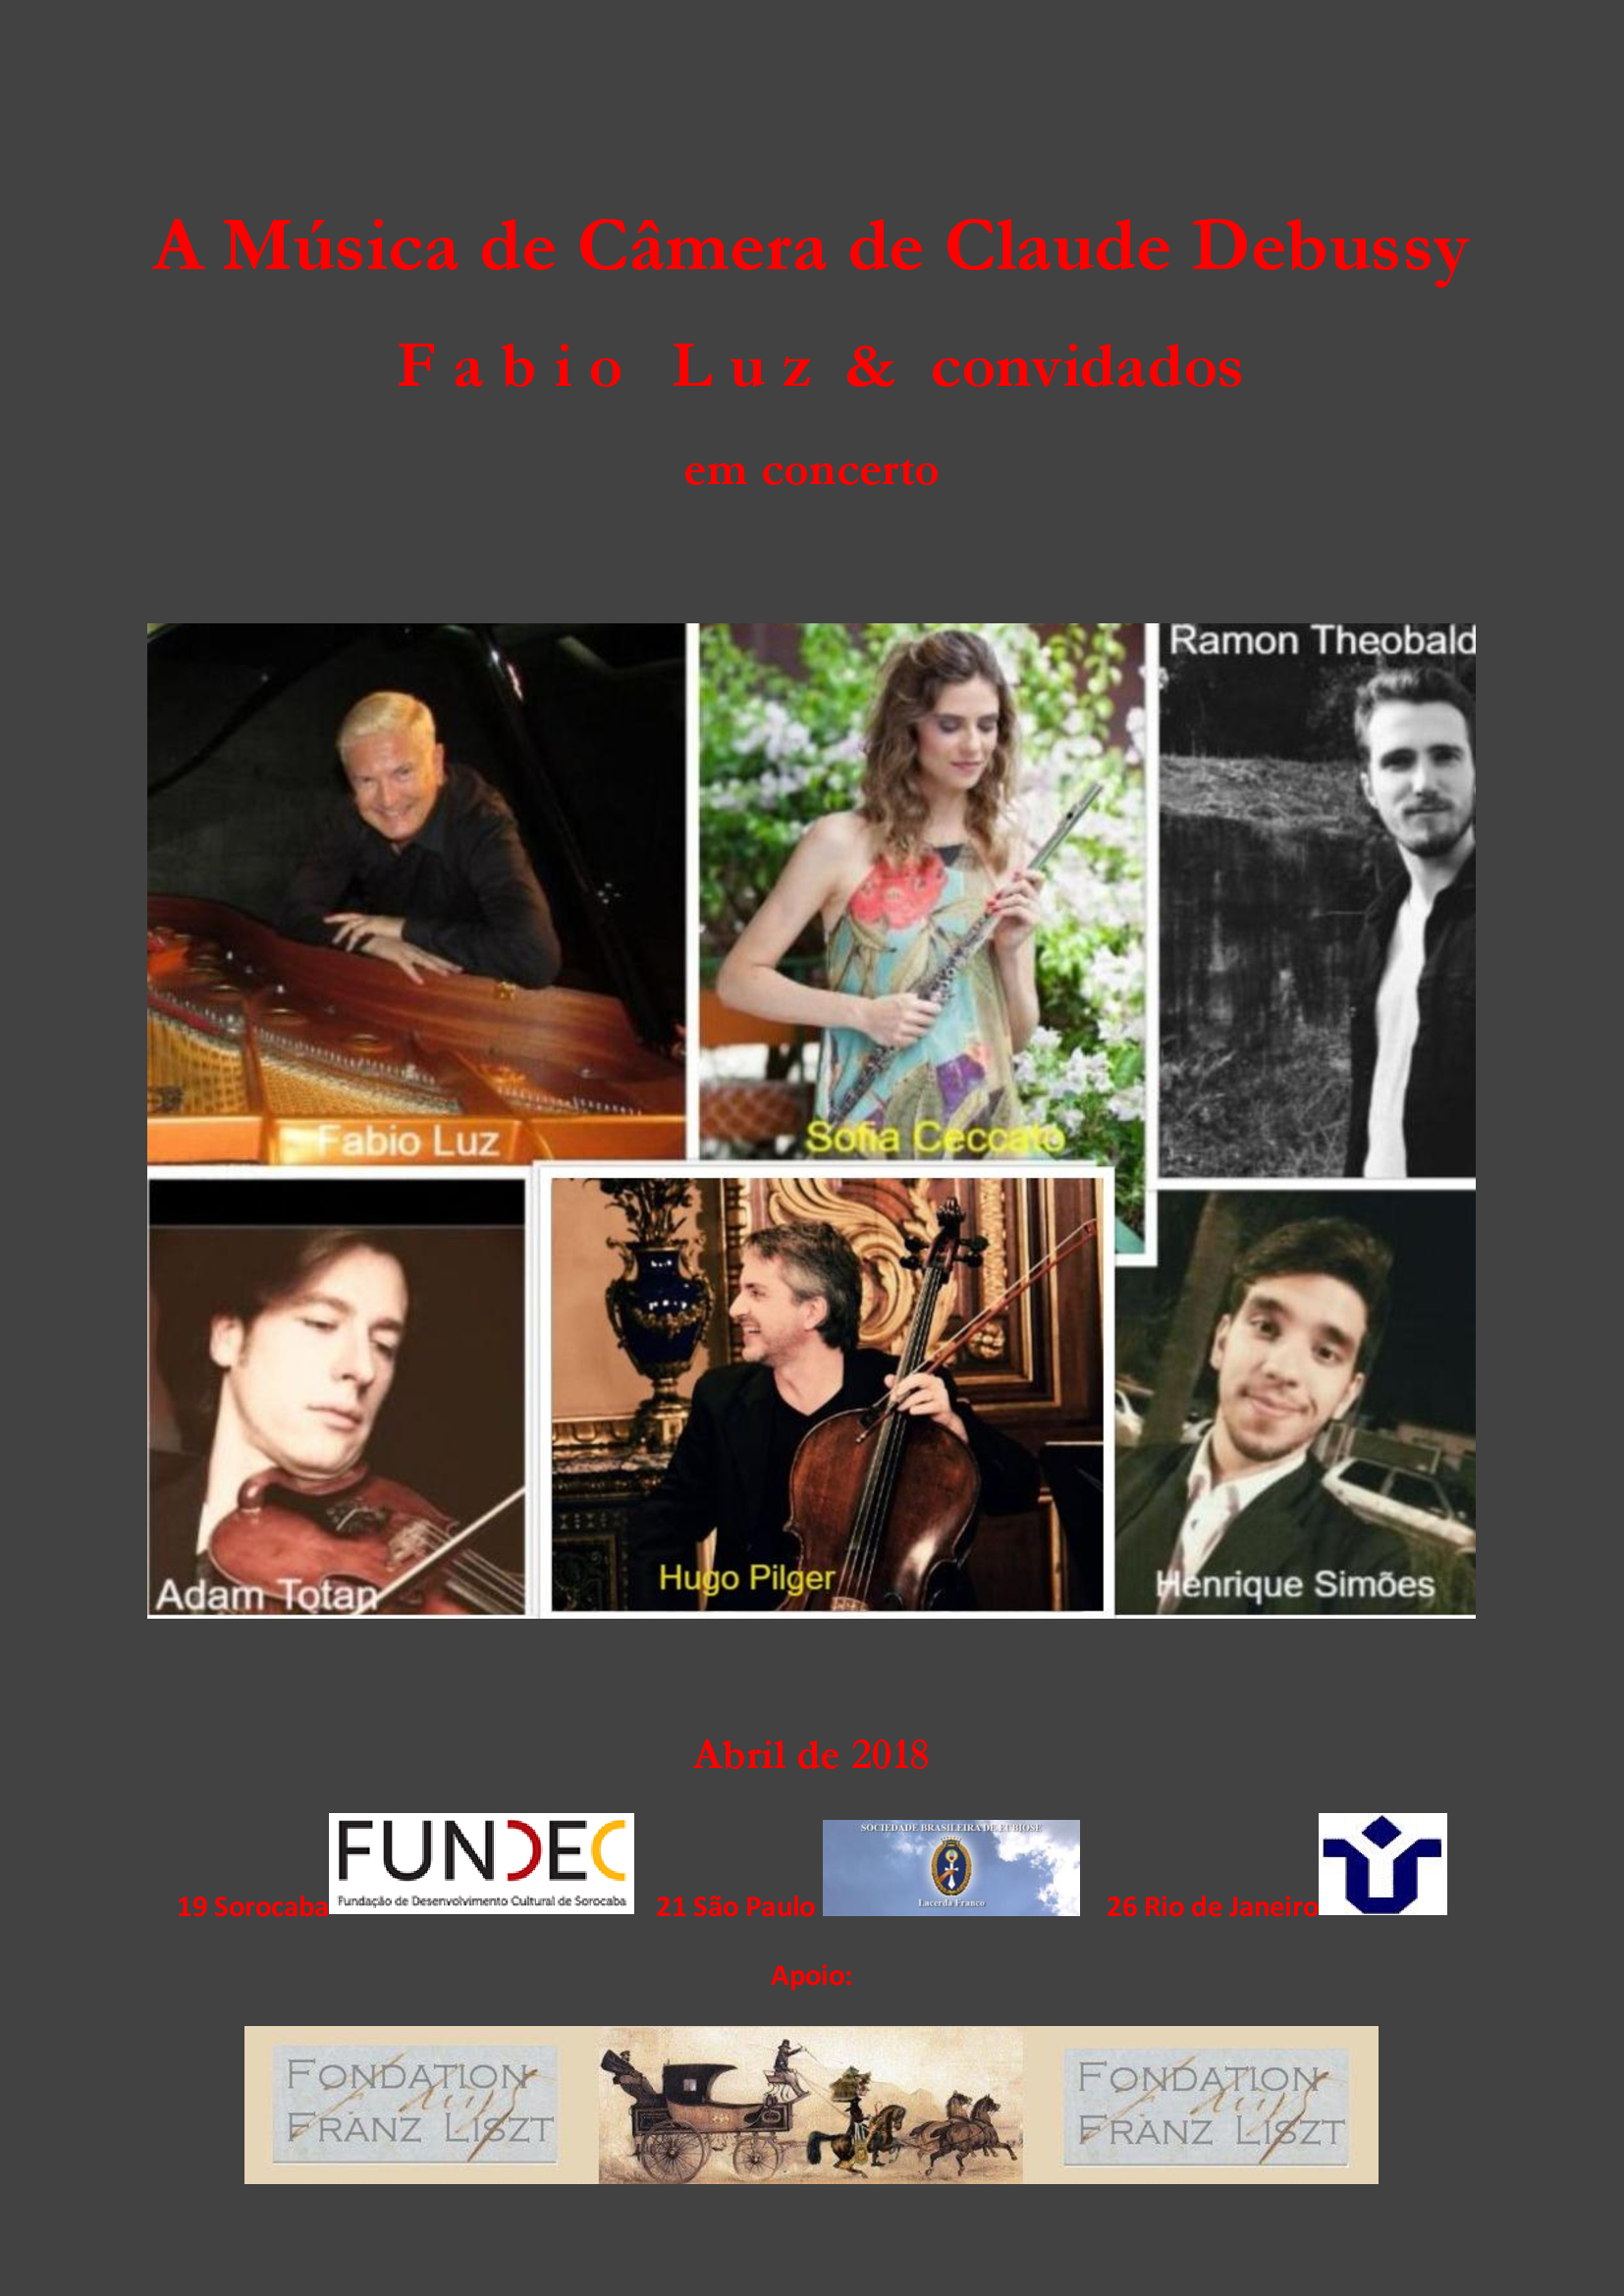 Poster Debussy abril 2018